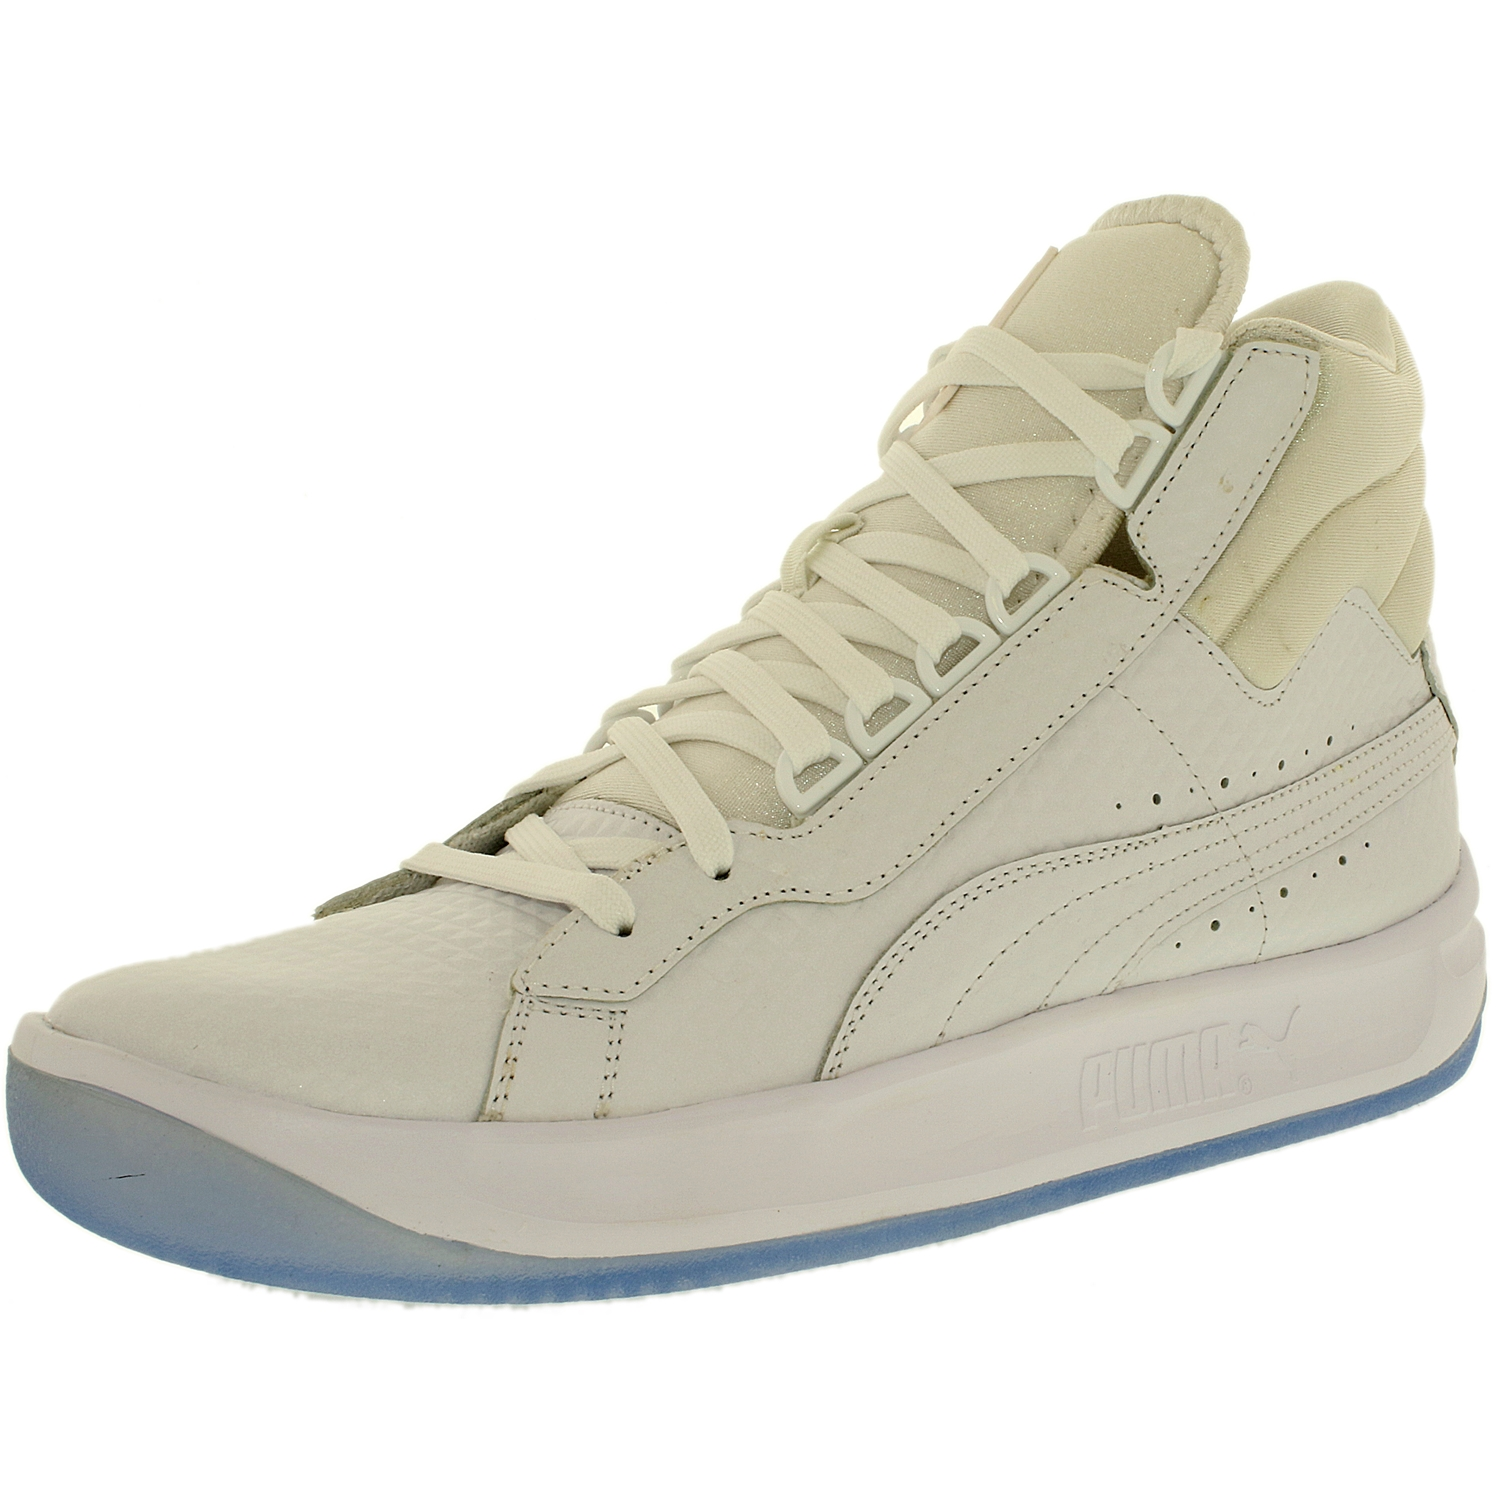 Puma Men's Challenge Embossed White Ankle-High Fashion Sn...